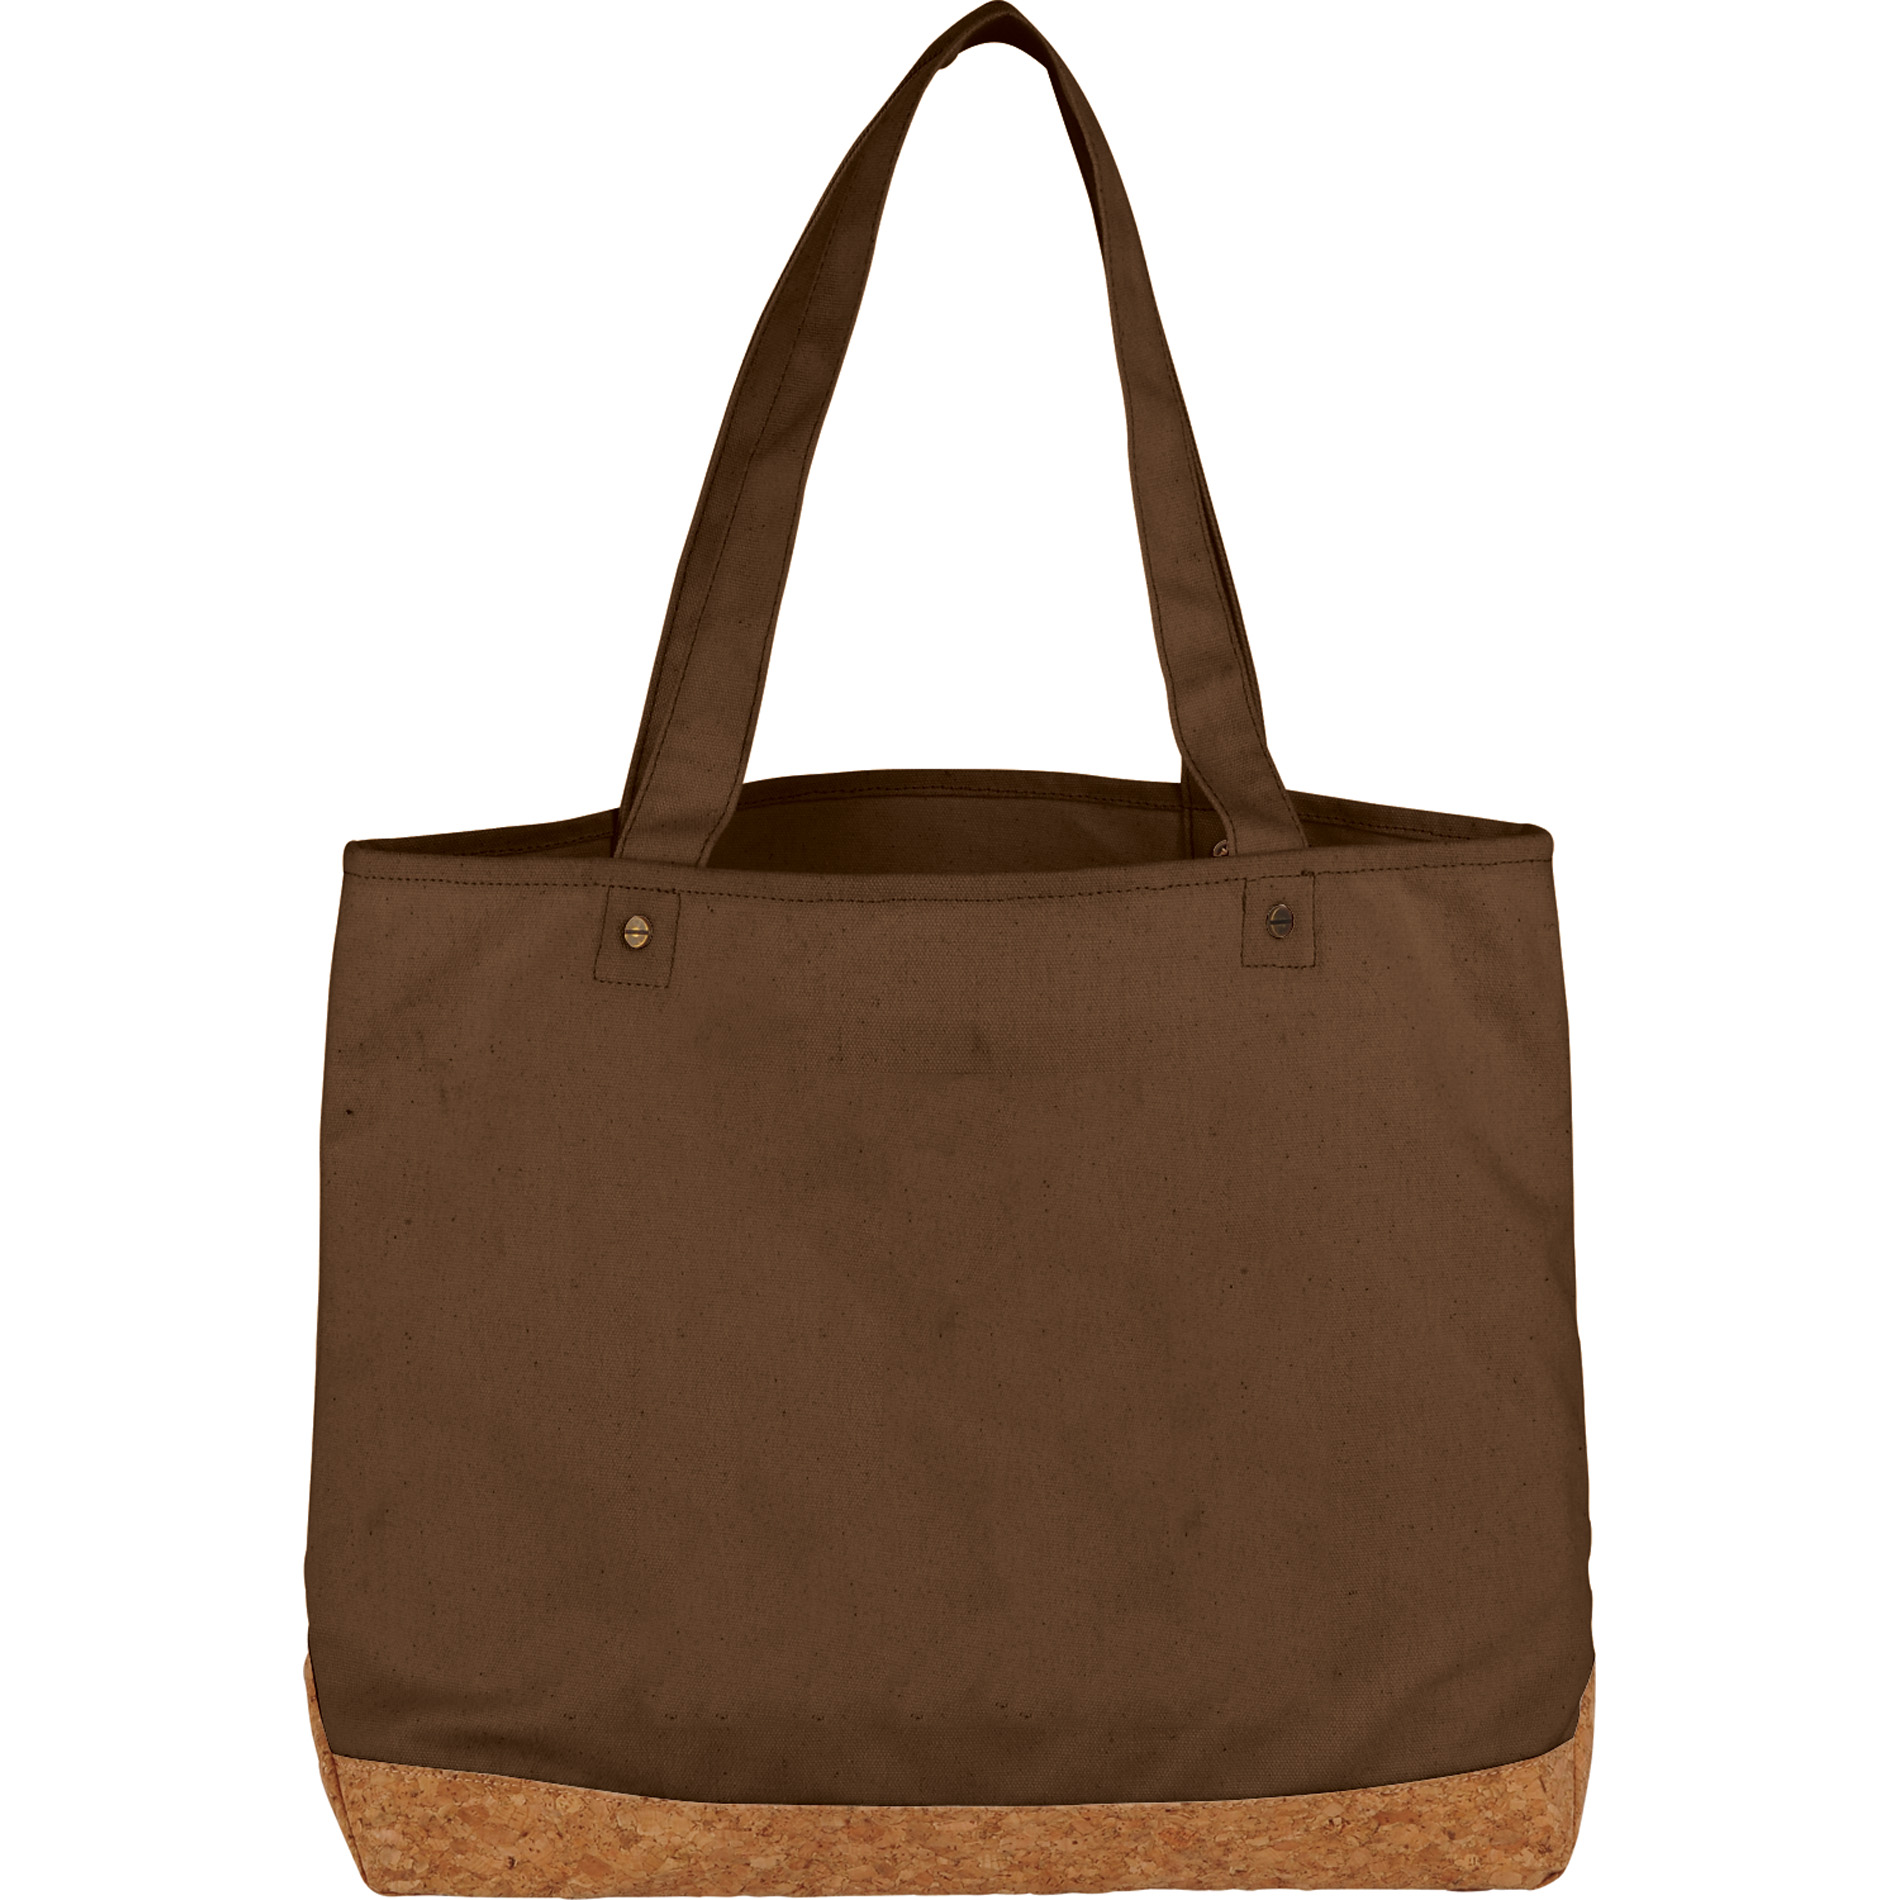 LEEDS 2160-61 - Napa Cotton and Cork Shopper Tote